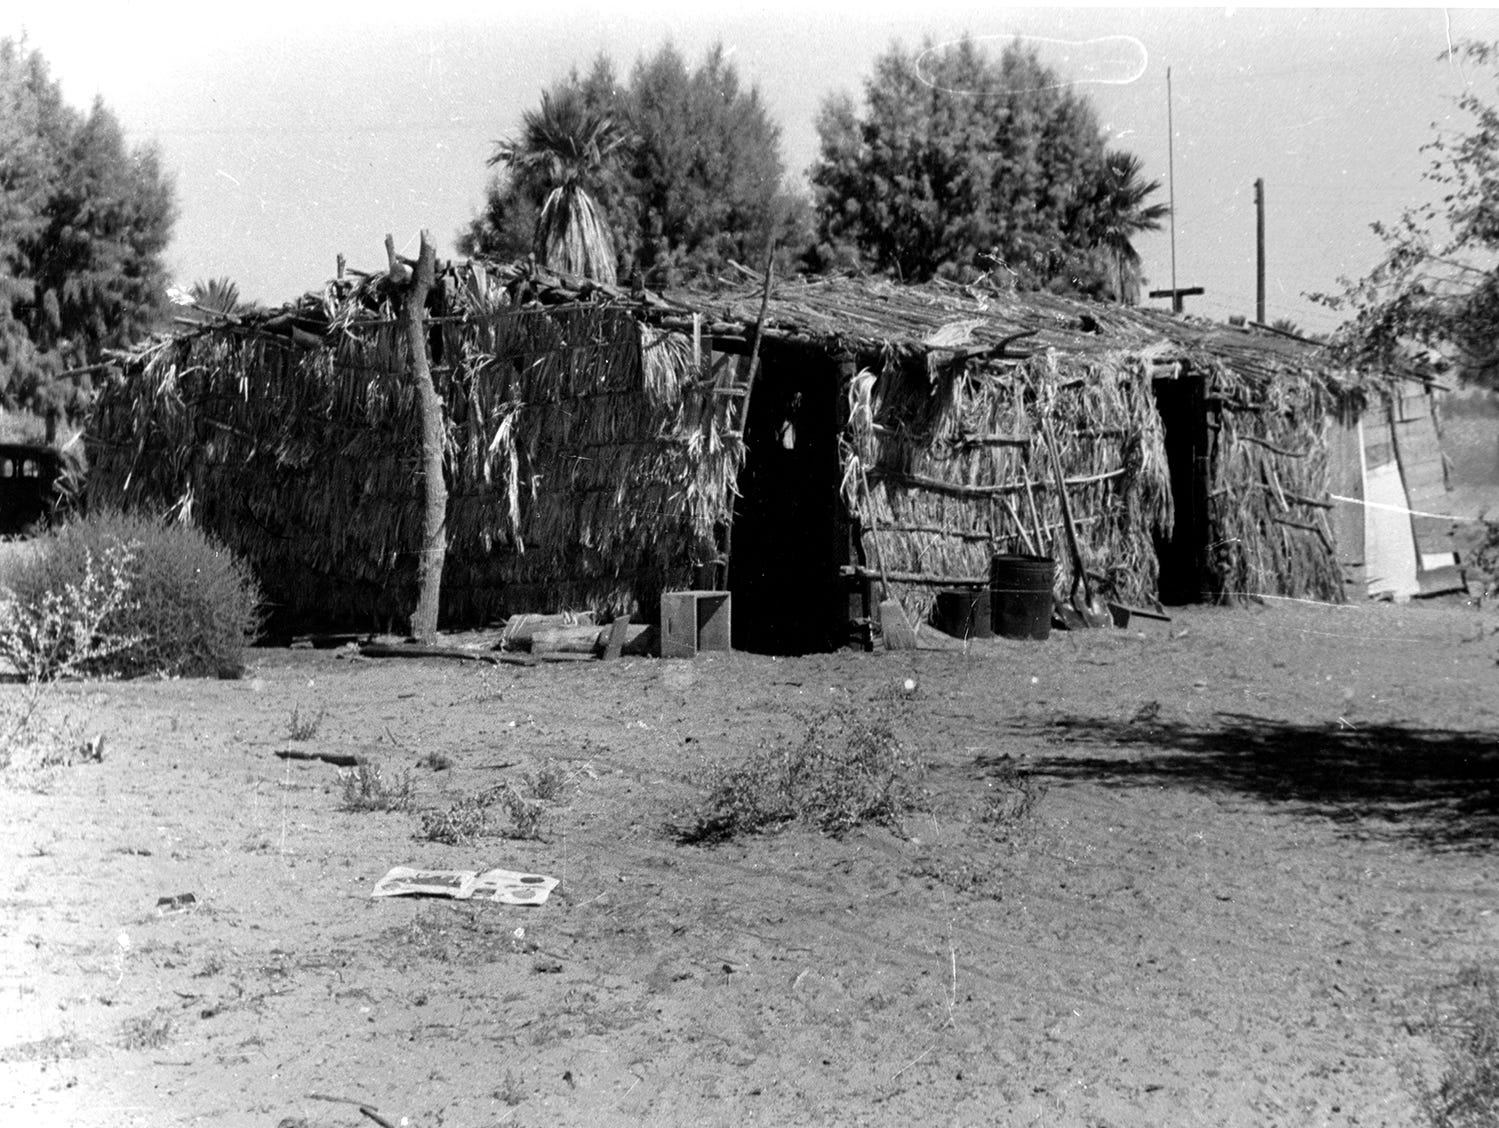 An undated photo shows a ceremonial house on the Augustine reservation in Coachella.